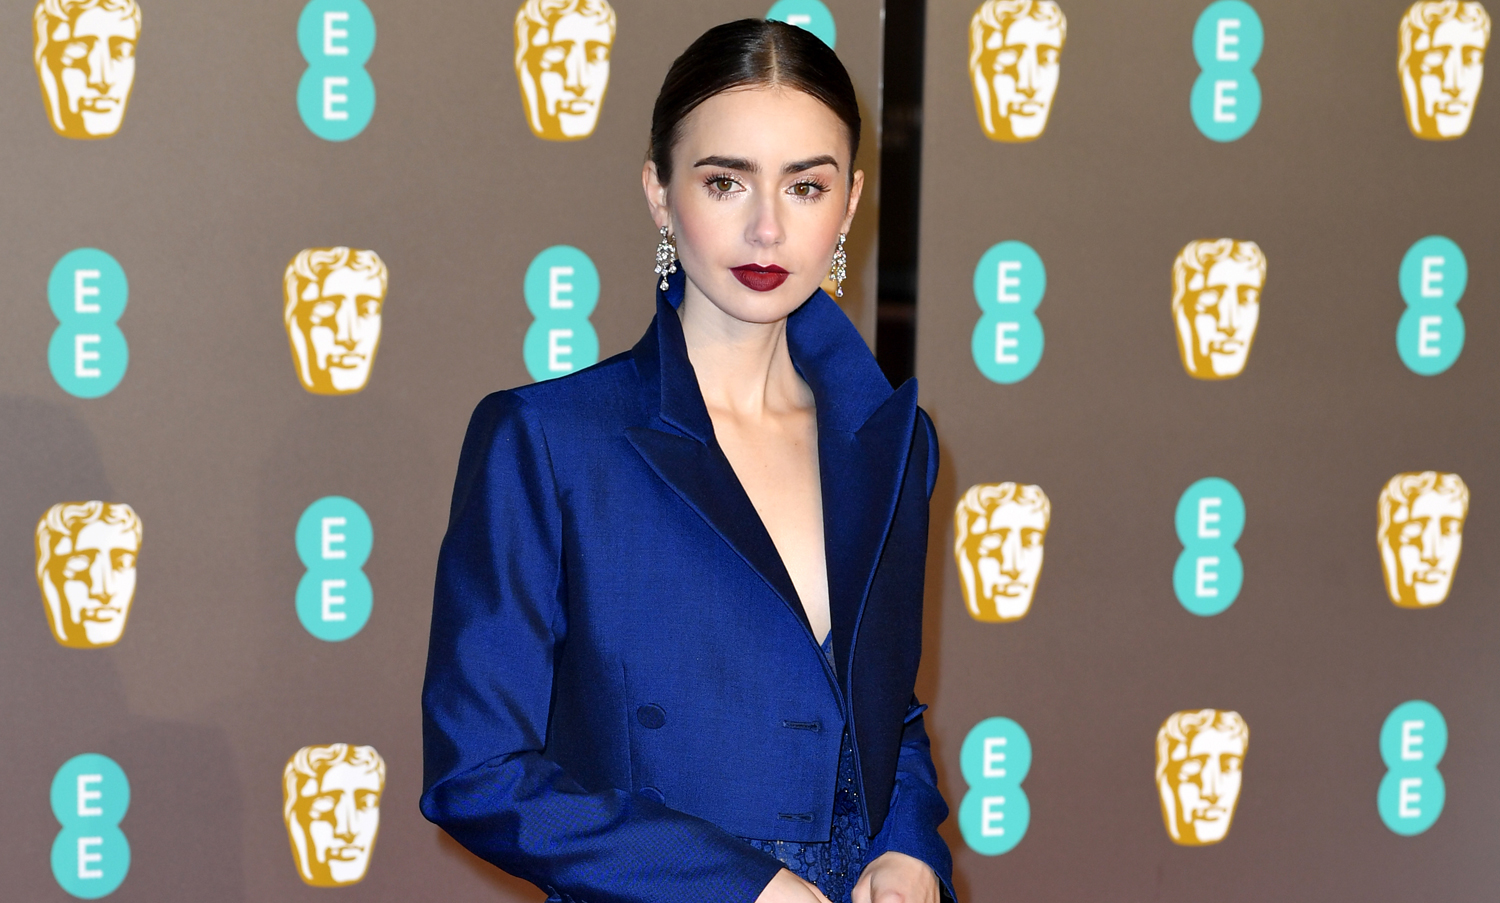 Baftas 2019: Lily Collins Is A Blue Beauty On BAFTAs 2019 Red Carpet